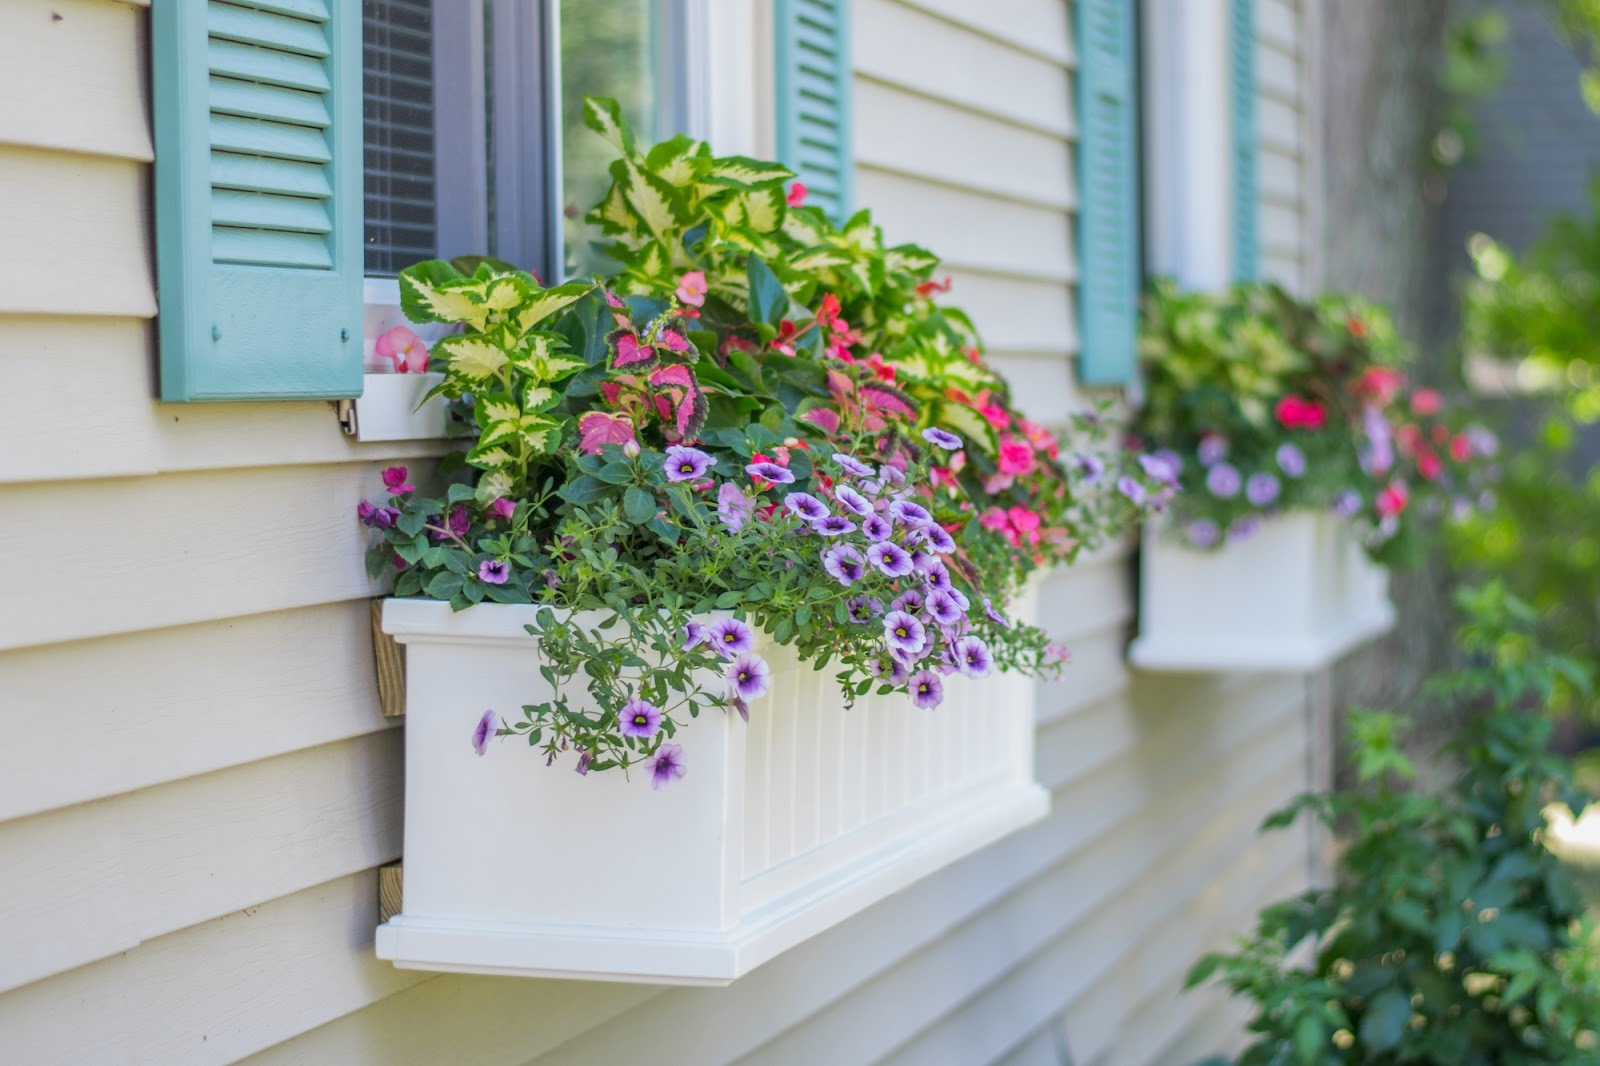 Flowers in a home exterior window in Raleigh